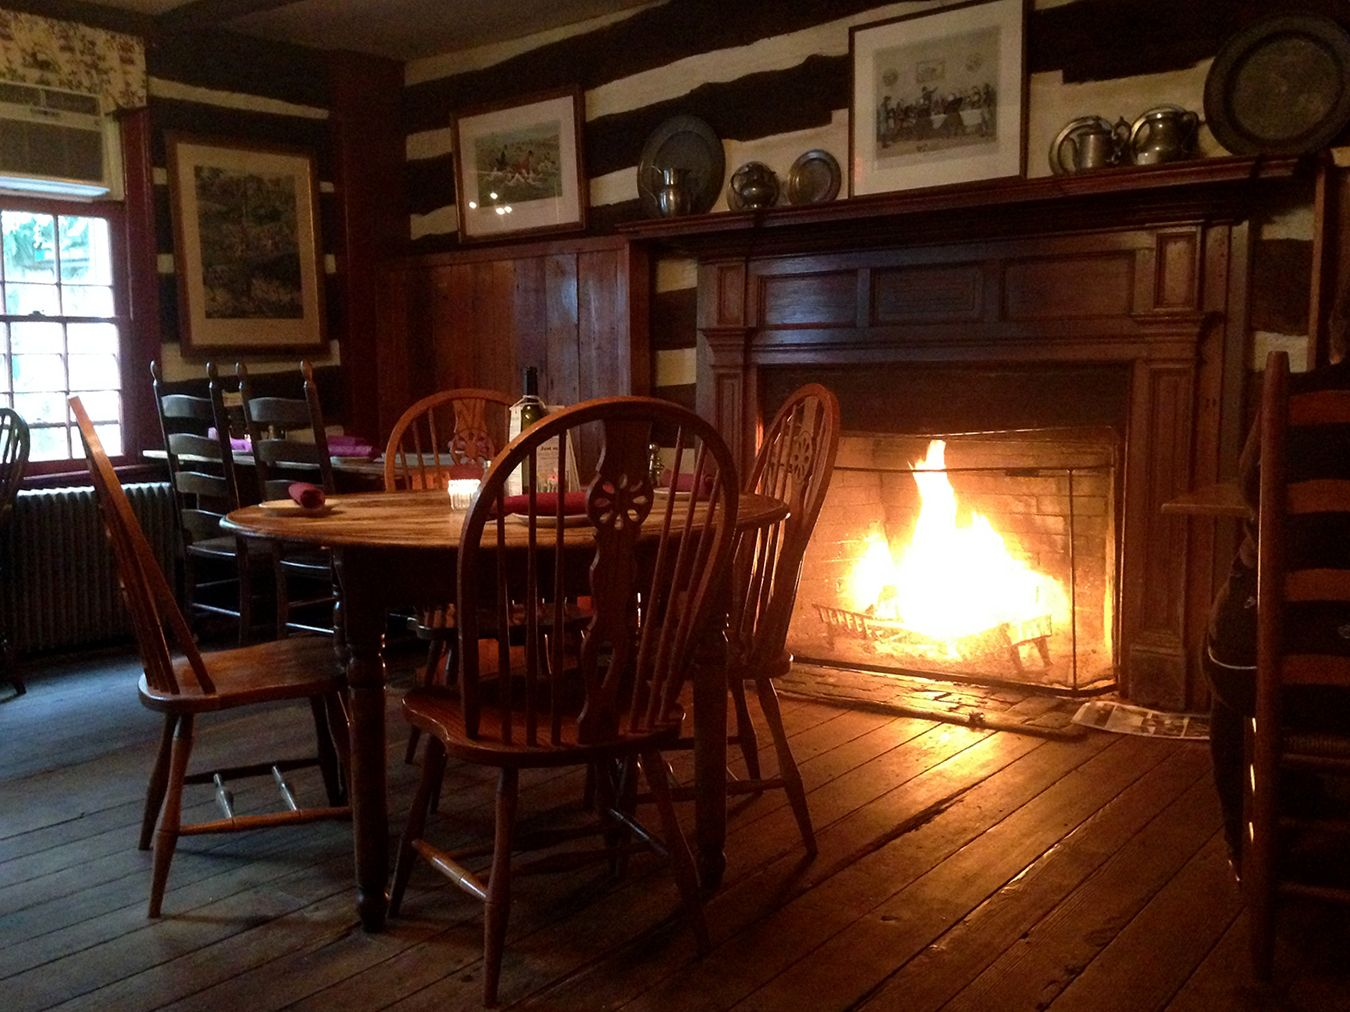 A cozy fire in the dining room of the Hunter's Head Tavern in Upperville, VA.  From ShenandoahLivingBlog.com